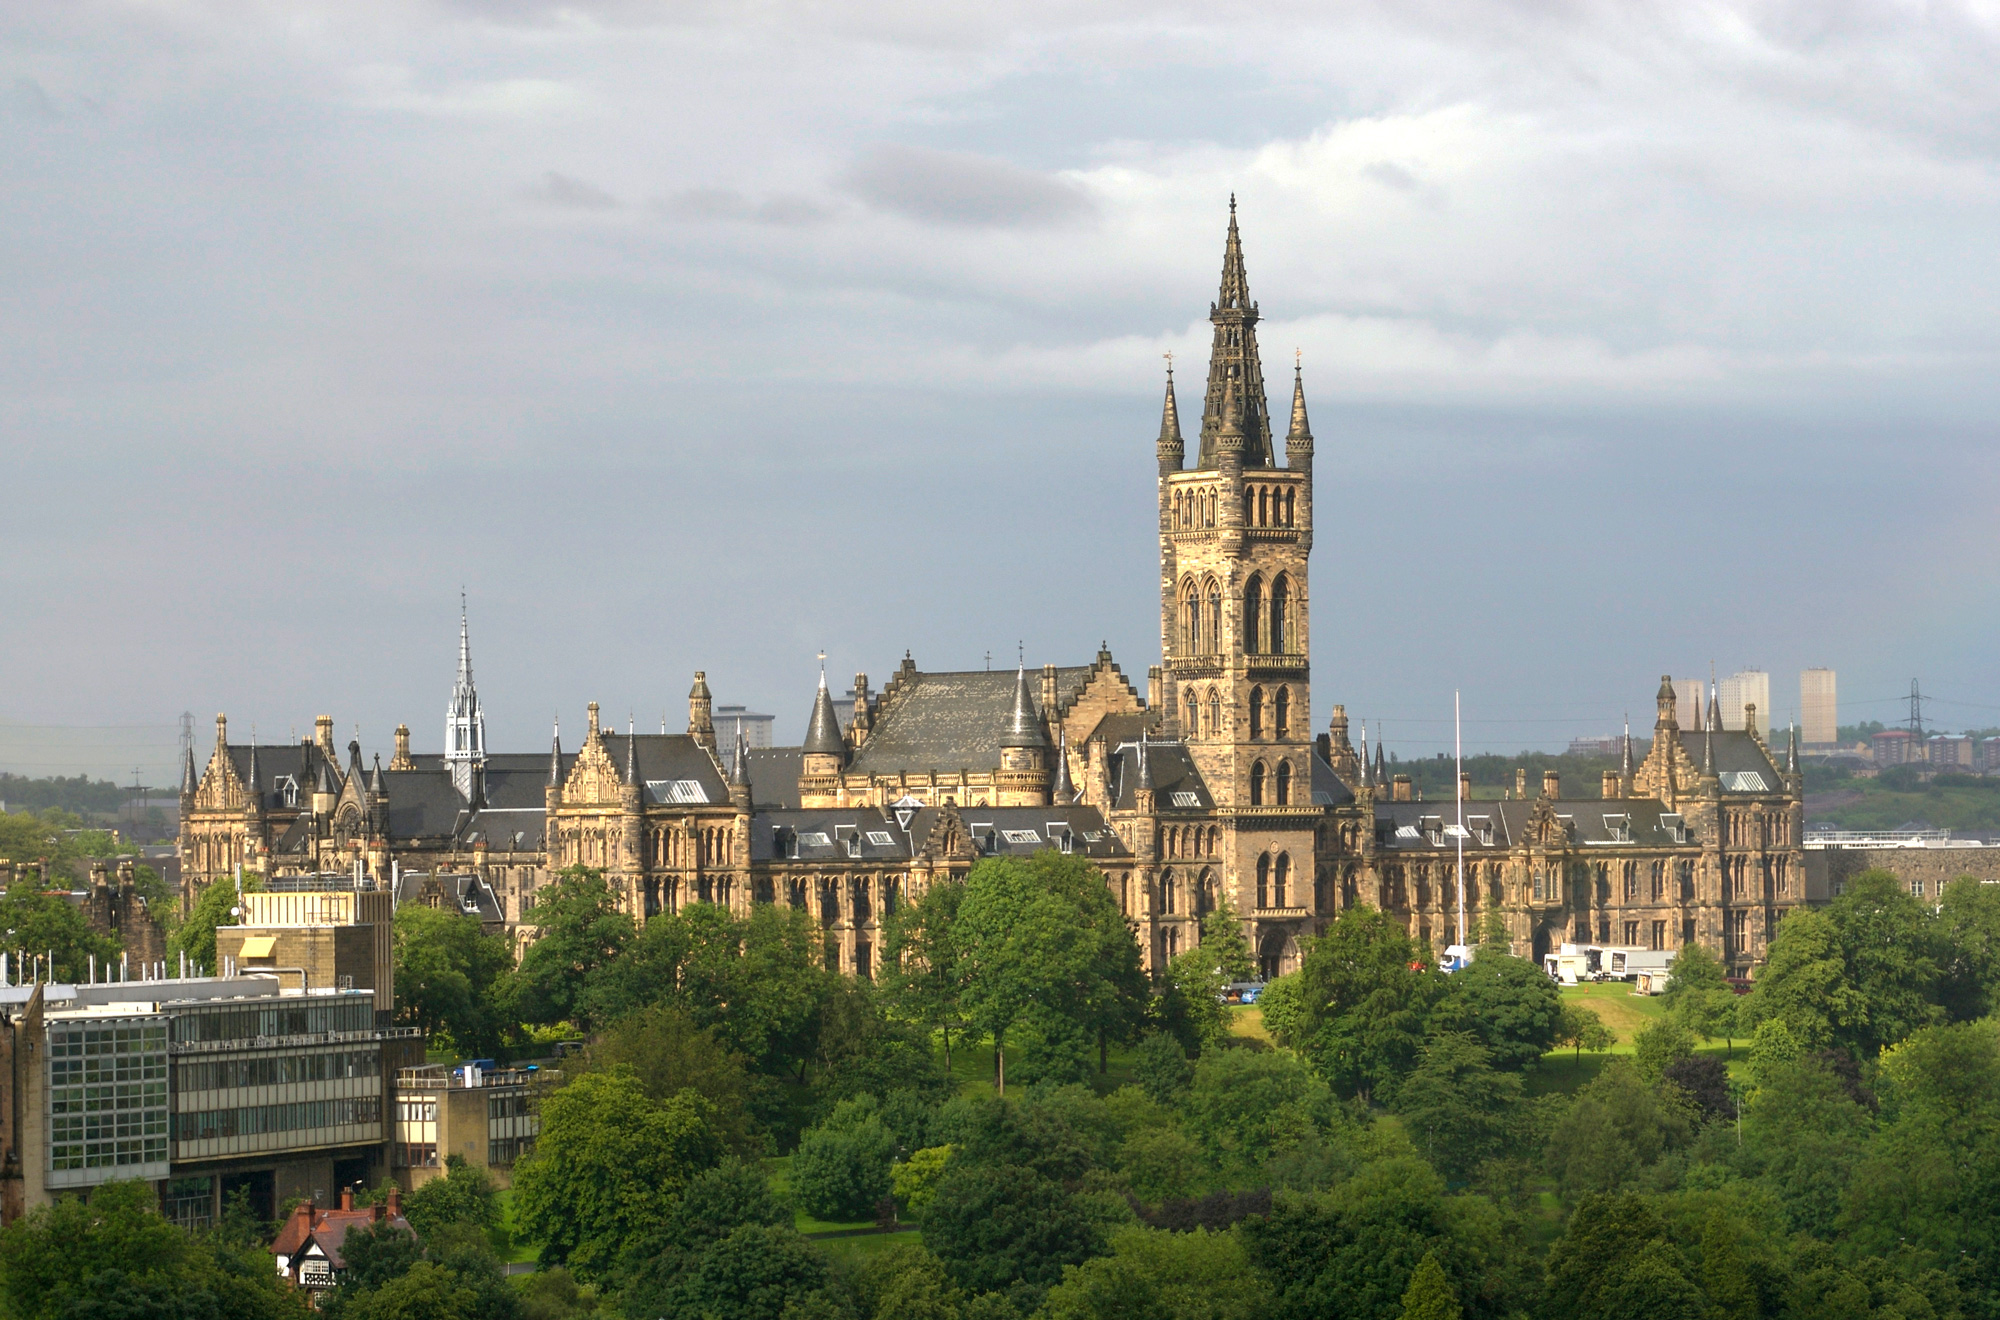 Glasgow University buildings, taken from Yorkhill Children's hospital.